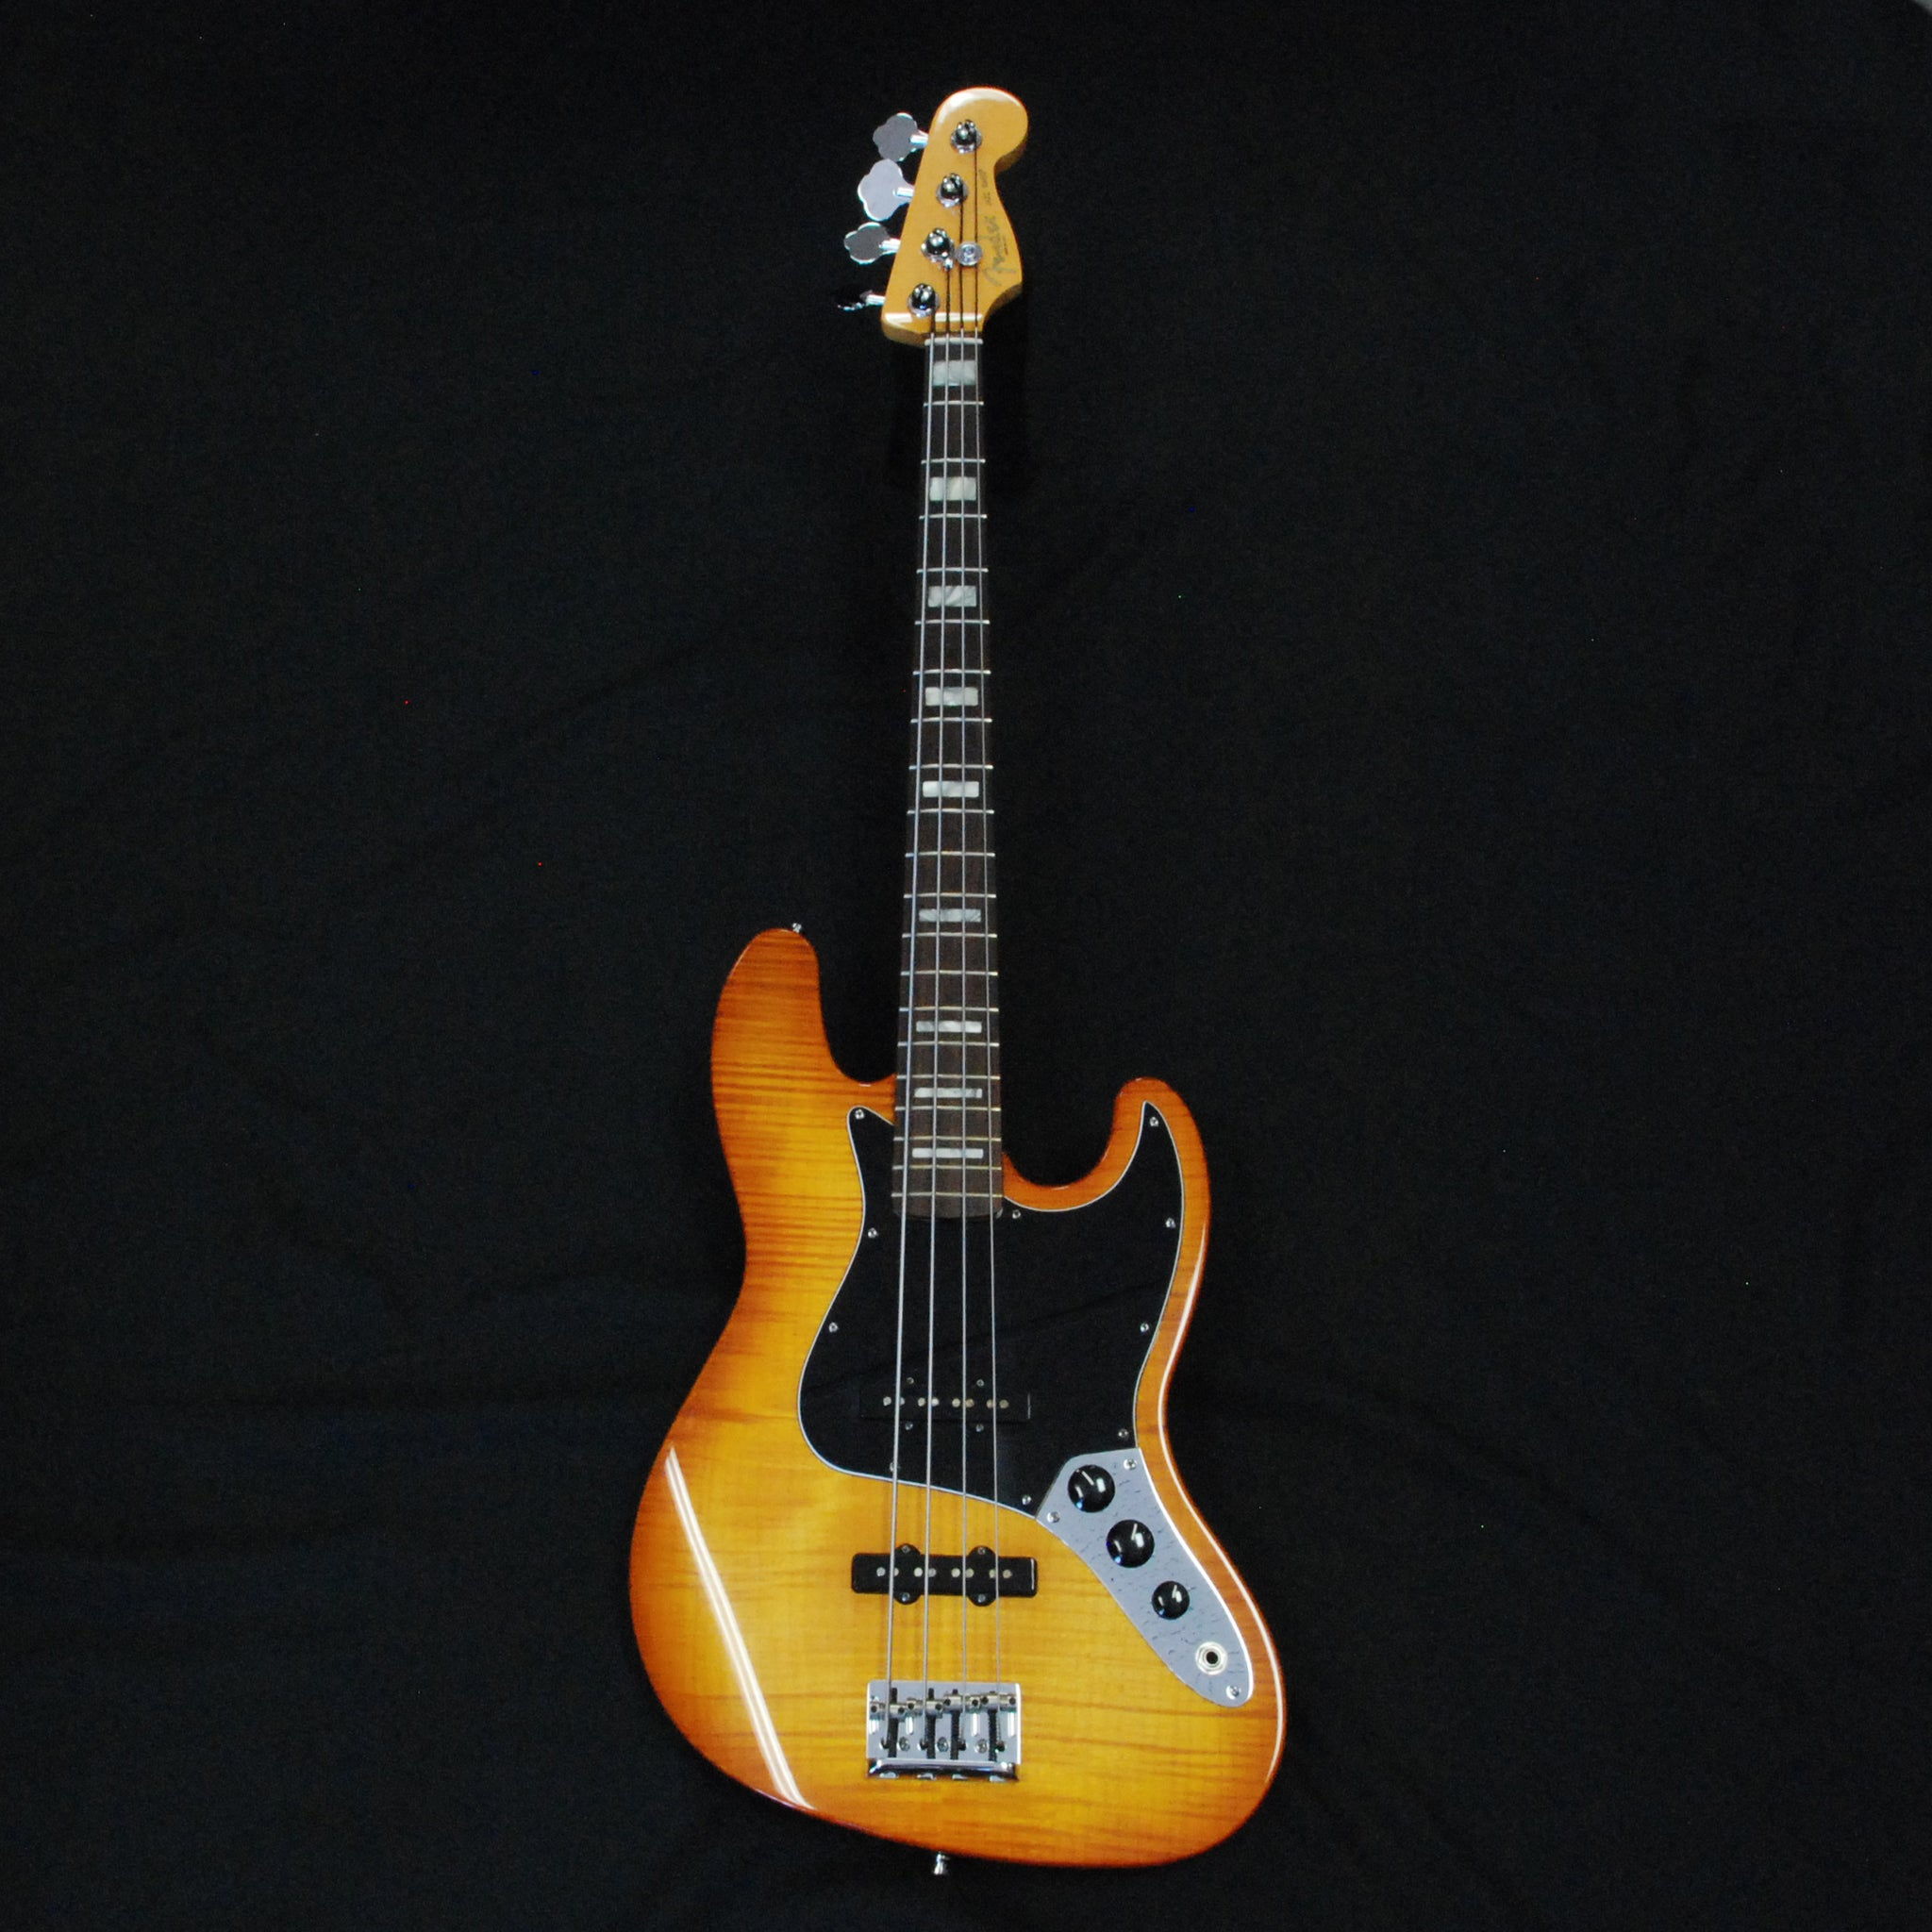 Shop online for Fender 2011 American Select Jazz Bass Gently Used today. Now available for purchase from Midlothian Music of Orland Park, Illinois, USA